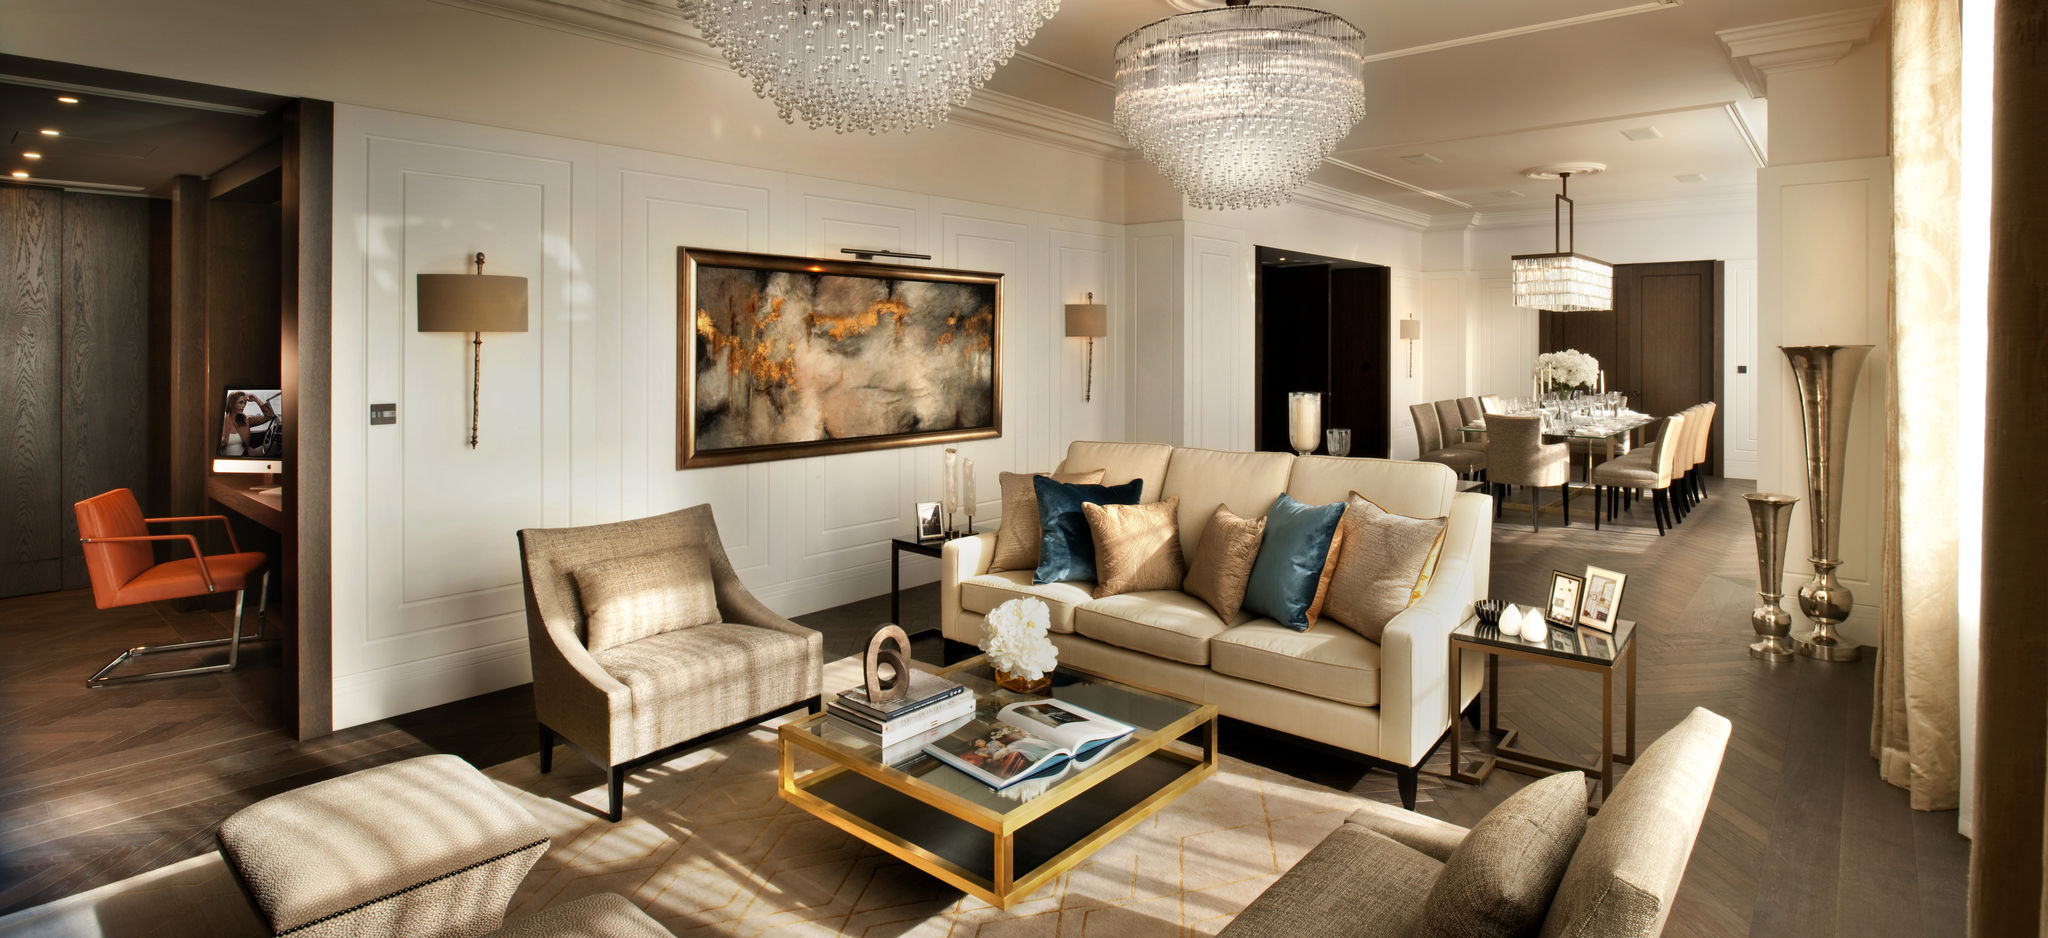 Connaught Place living room with Flairlight designed innovative LED lighting